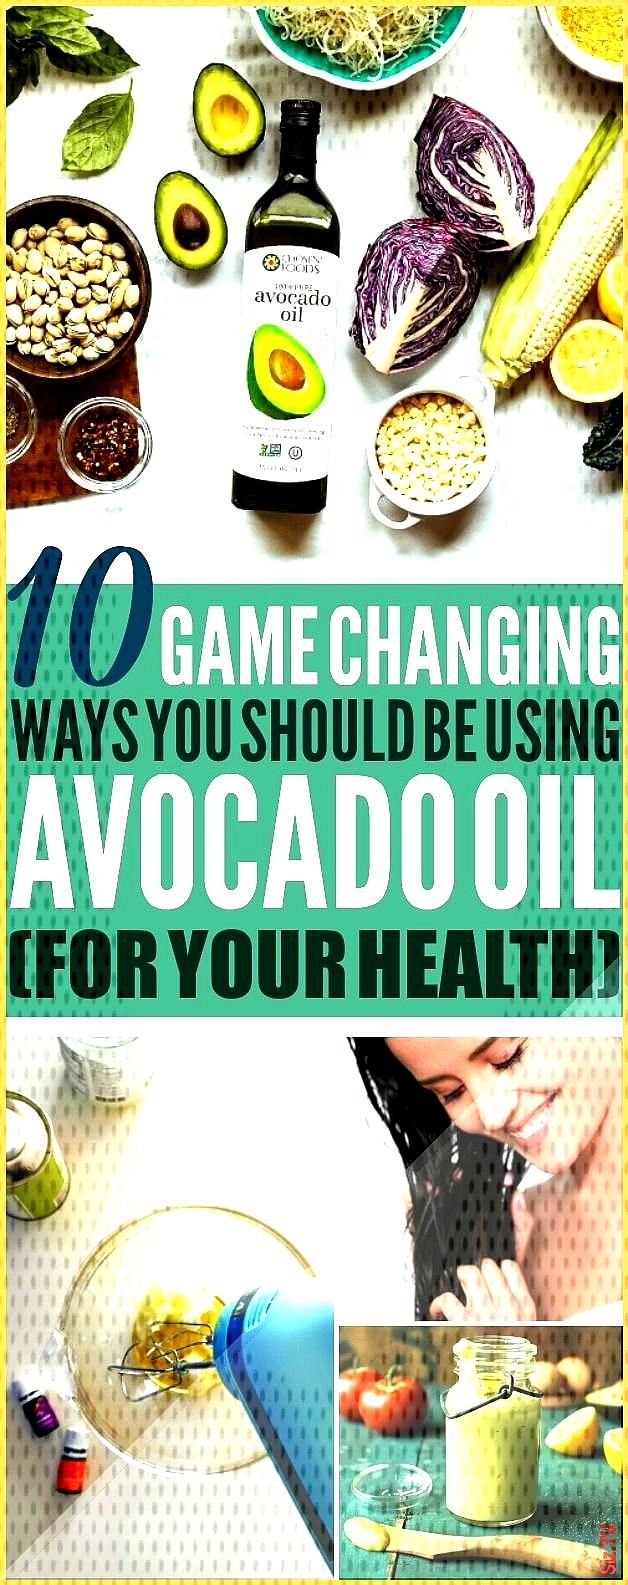 11 Uses For Avocado Oil You Didn t Know About 11 Uses For Avocado Oil You Didn t Know About Meraadi